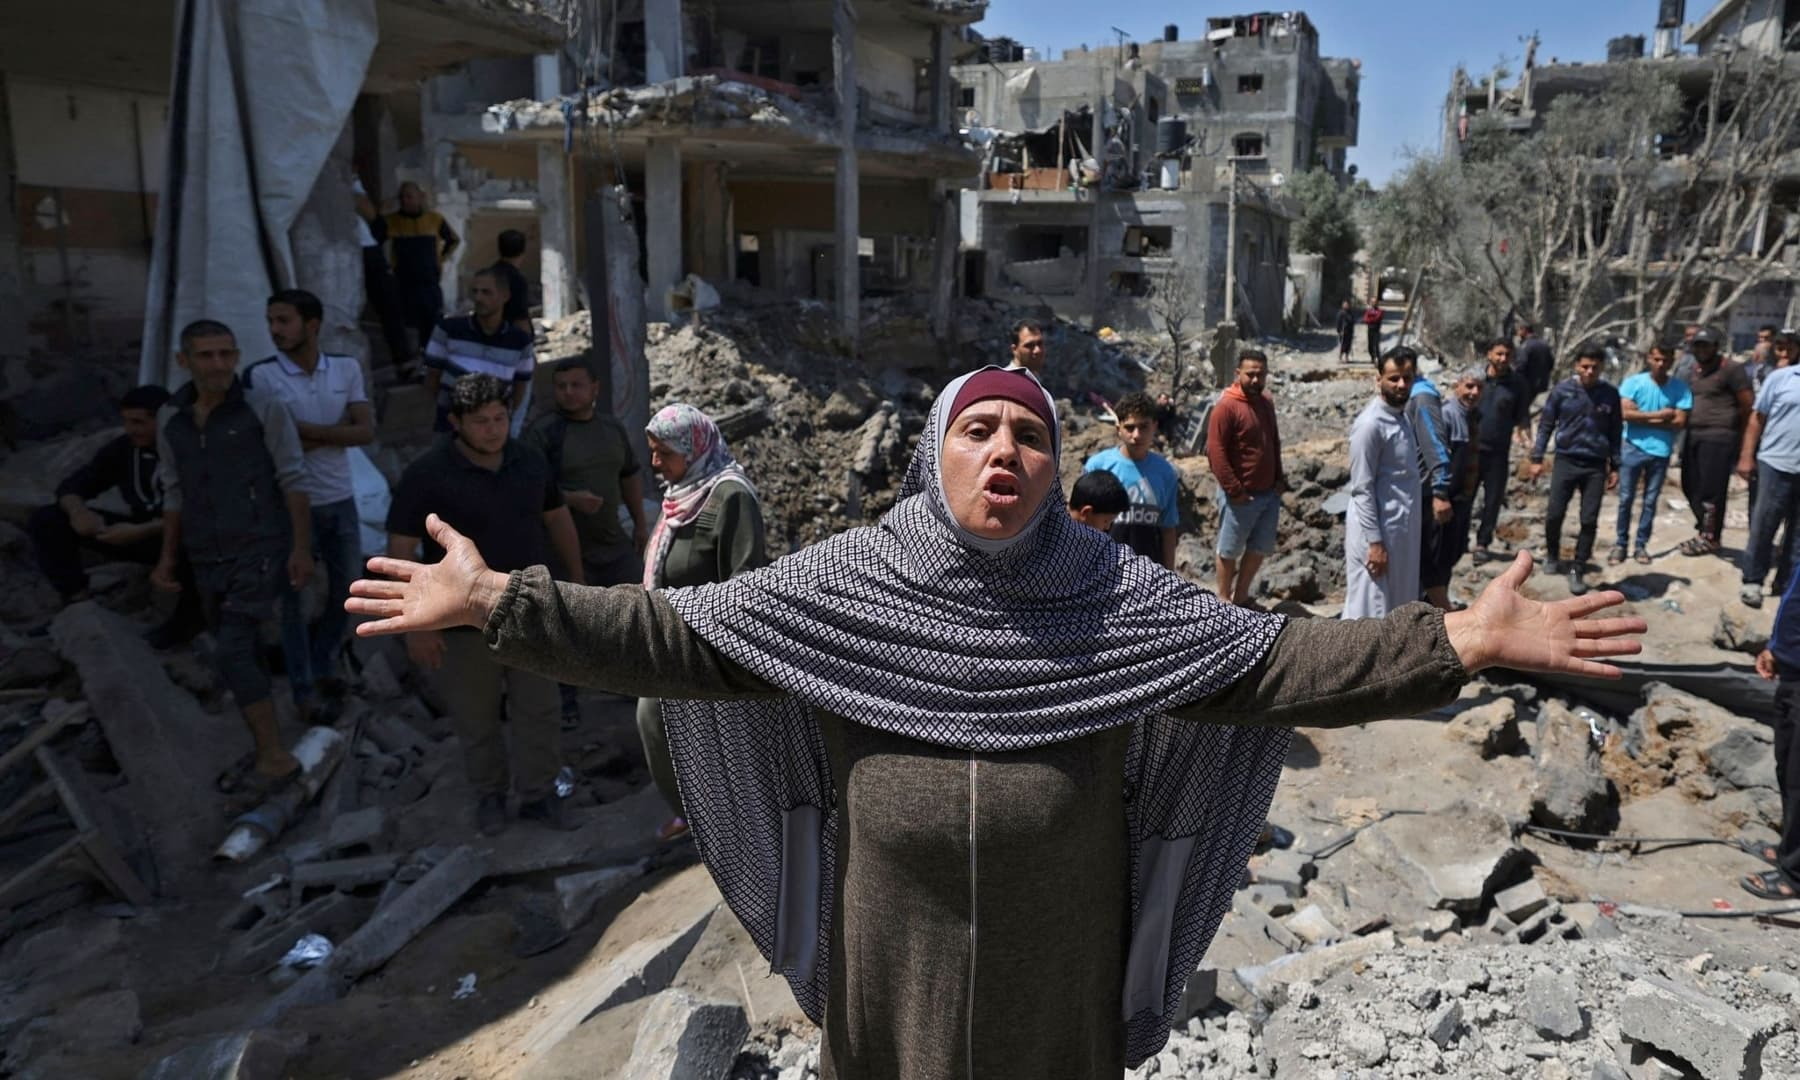 A Palestinian woman reacts as people assess the damage caused by Israeli air strikes, in Beit Hanun in the northern Gaza Strip, May 14, 2021. — AFP